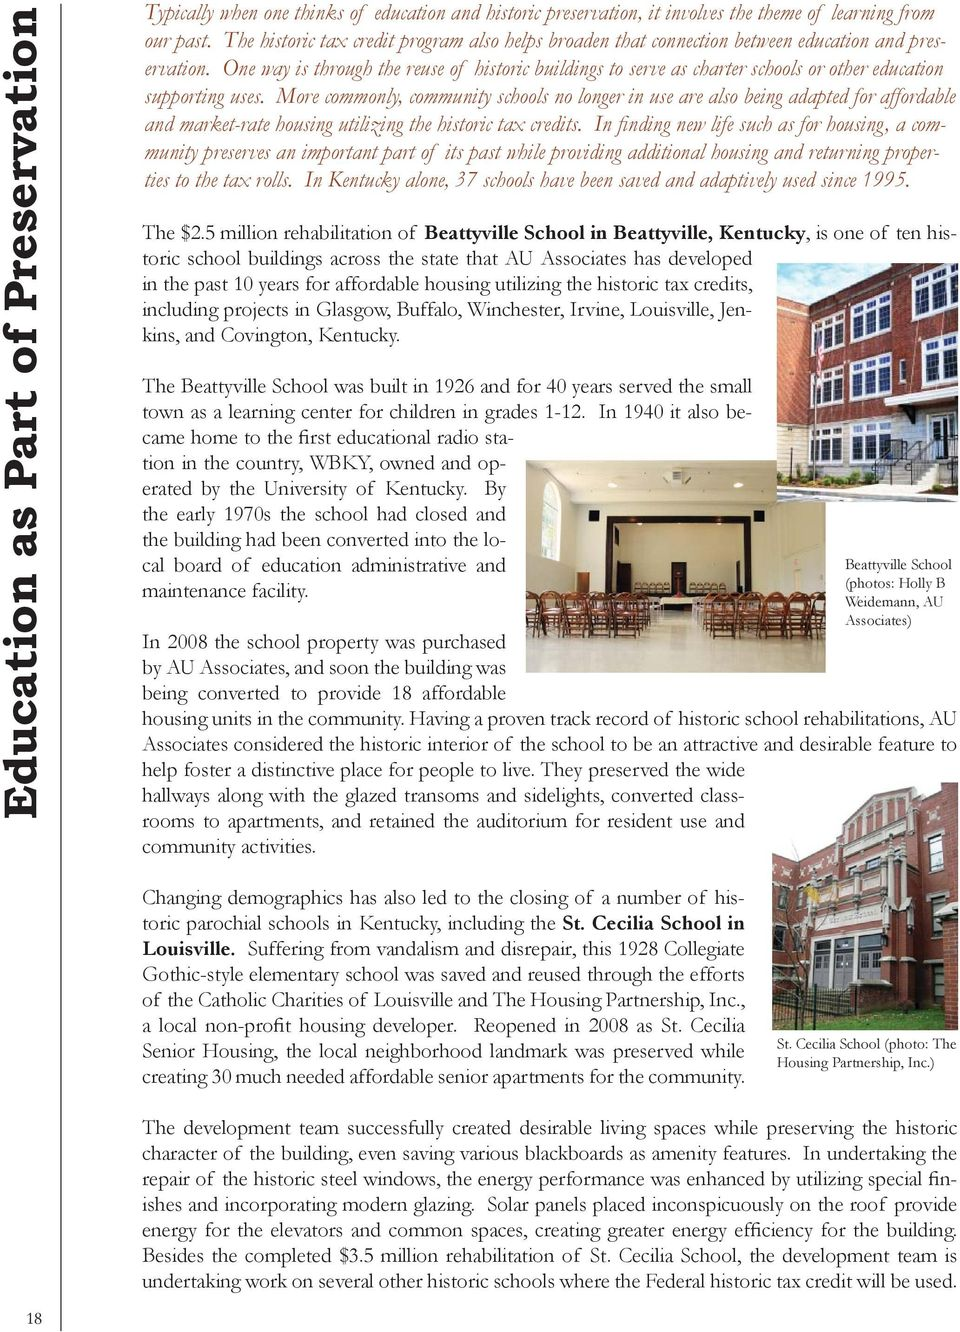 One way is through the reuse of historic buildings to serve as charter schools or other education supporting uses.